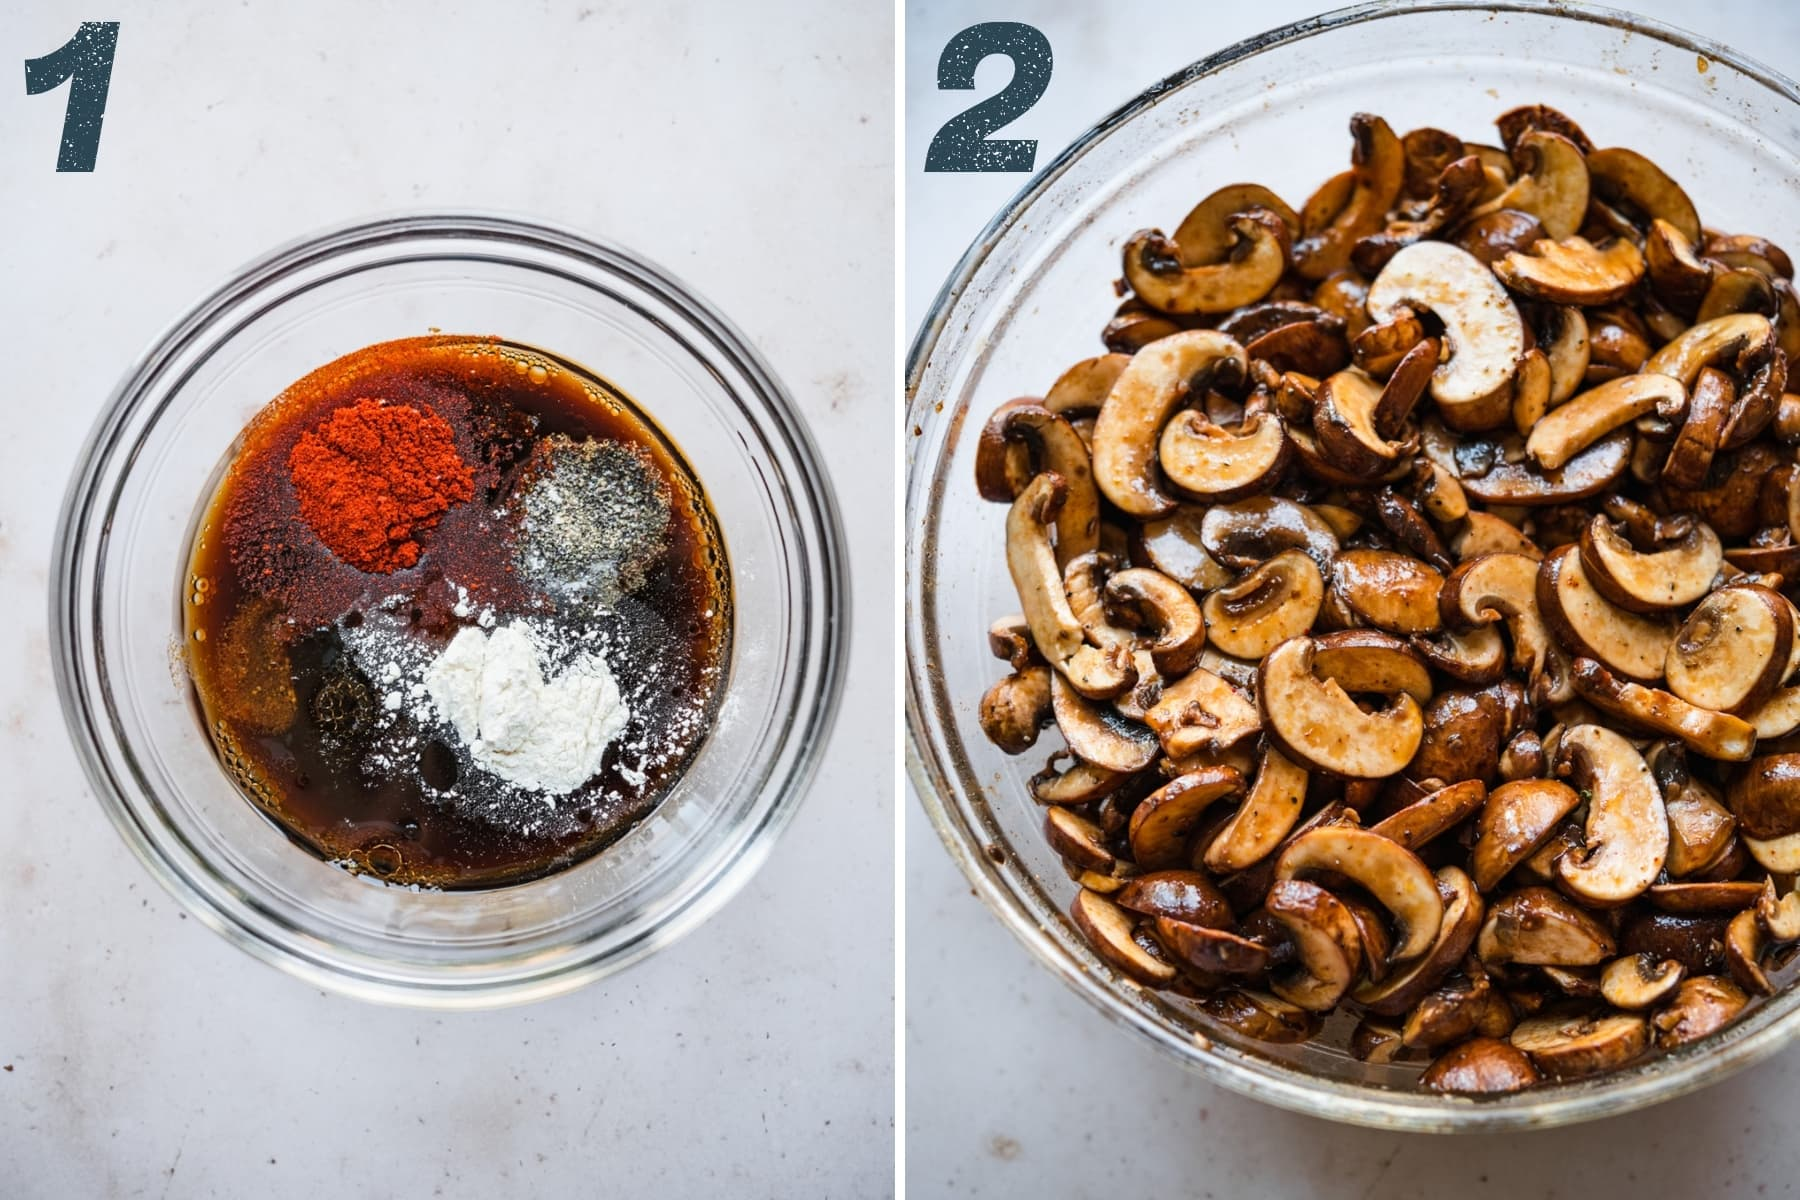 on the left: marinade ingredients for mushroom bacon in bowl. on the right: mushrooms being marinated.